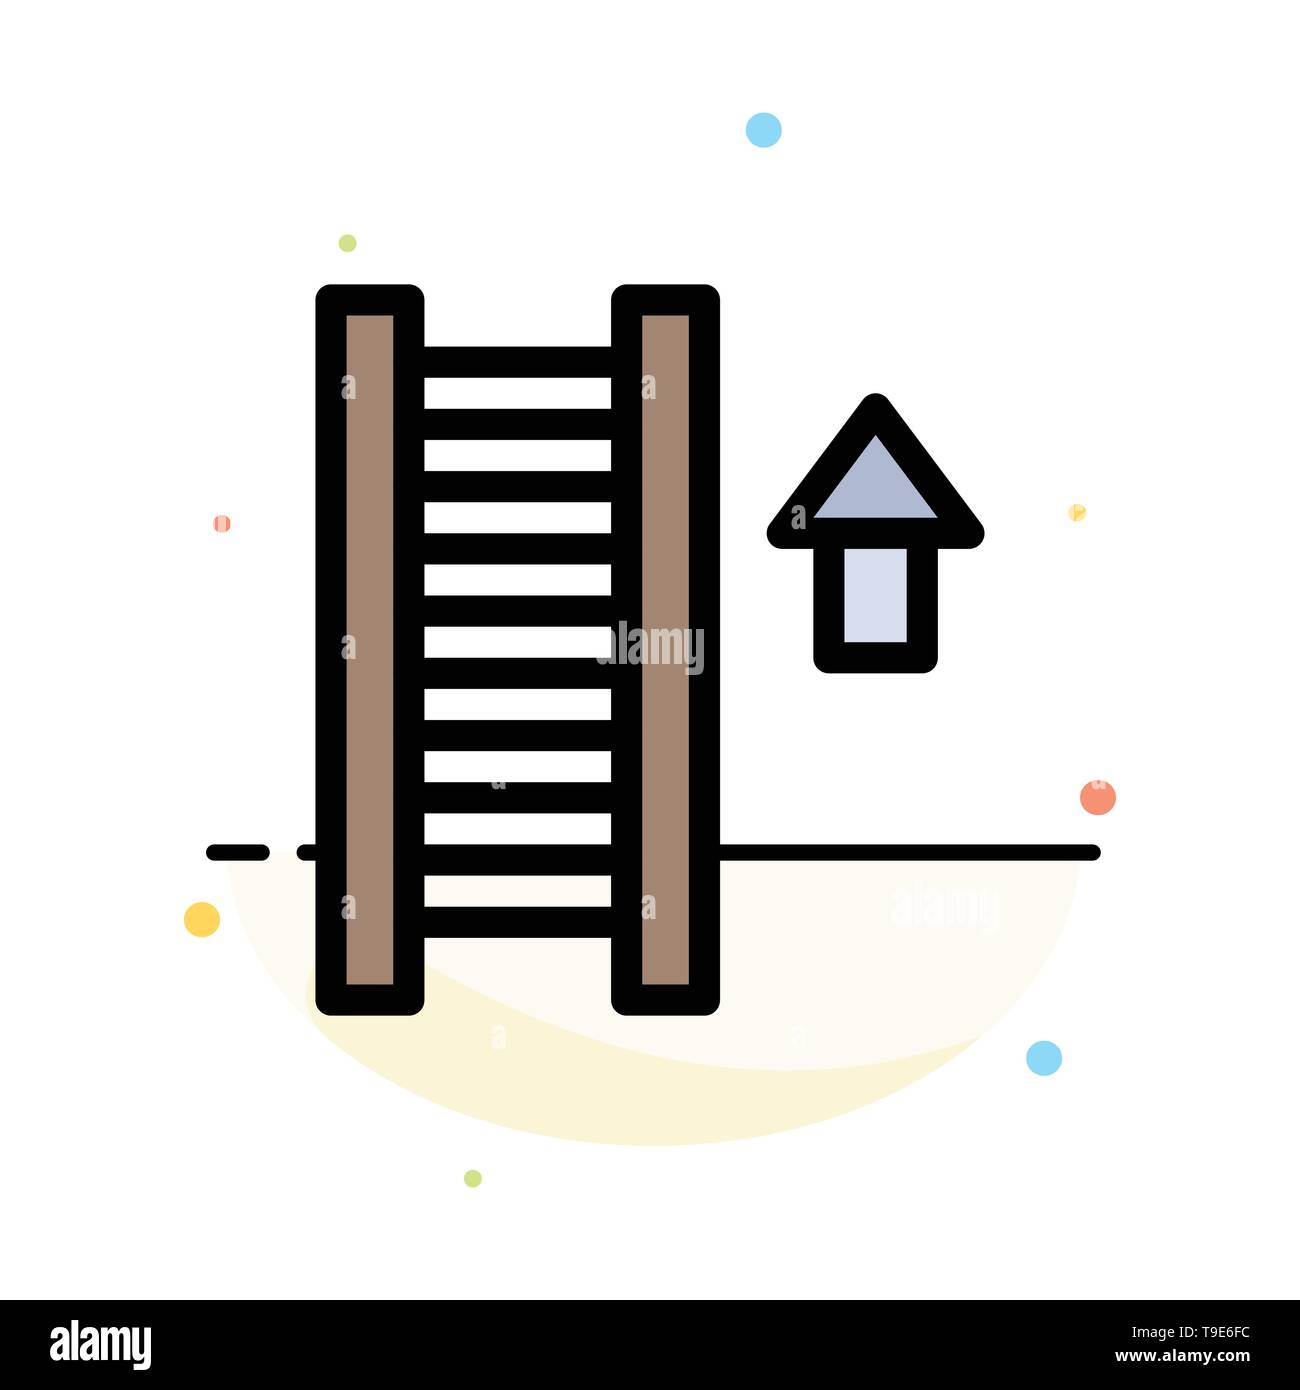 Ladder, Stair, Staircase, Arrow Abstract Flat Color Icon Template